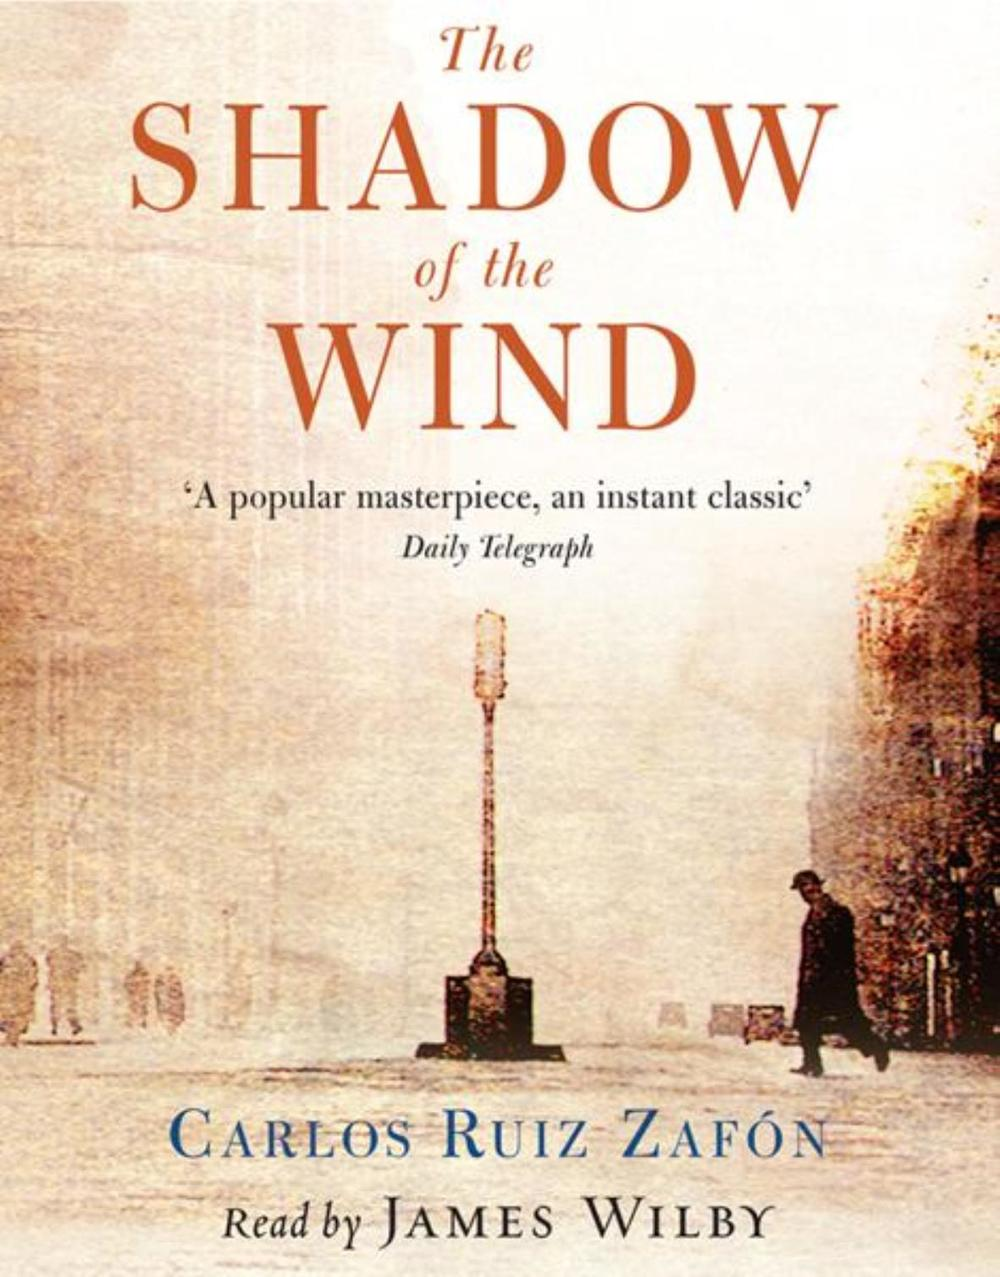 Guest Post: The Evocative and Layered The Shadow of the Wind by ...